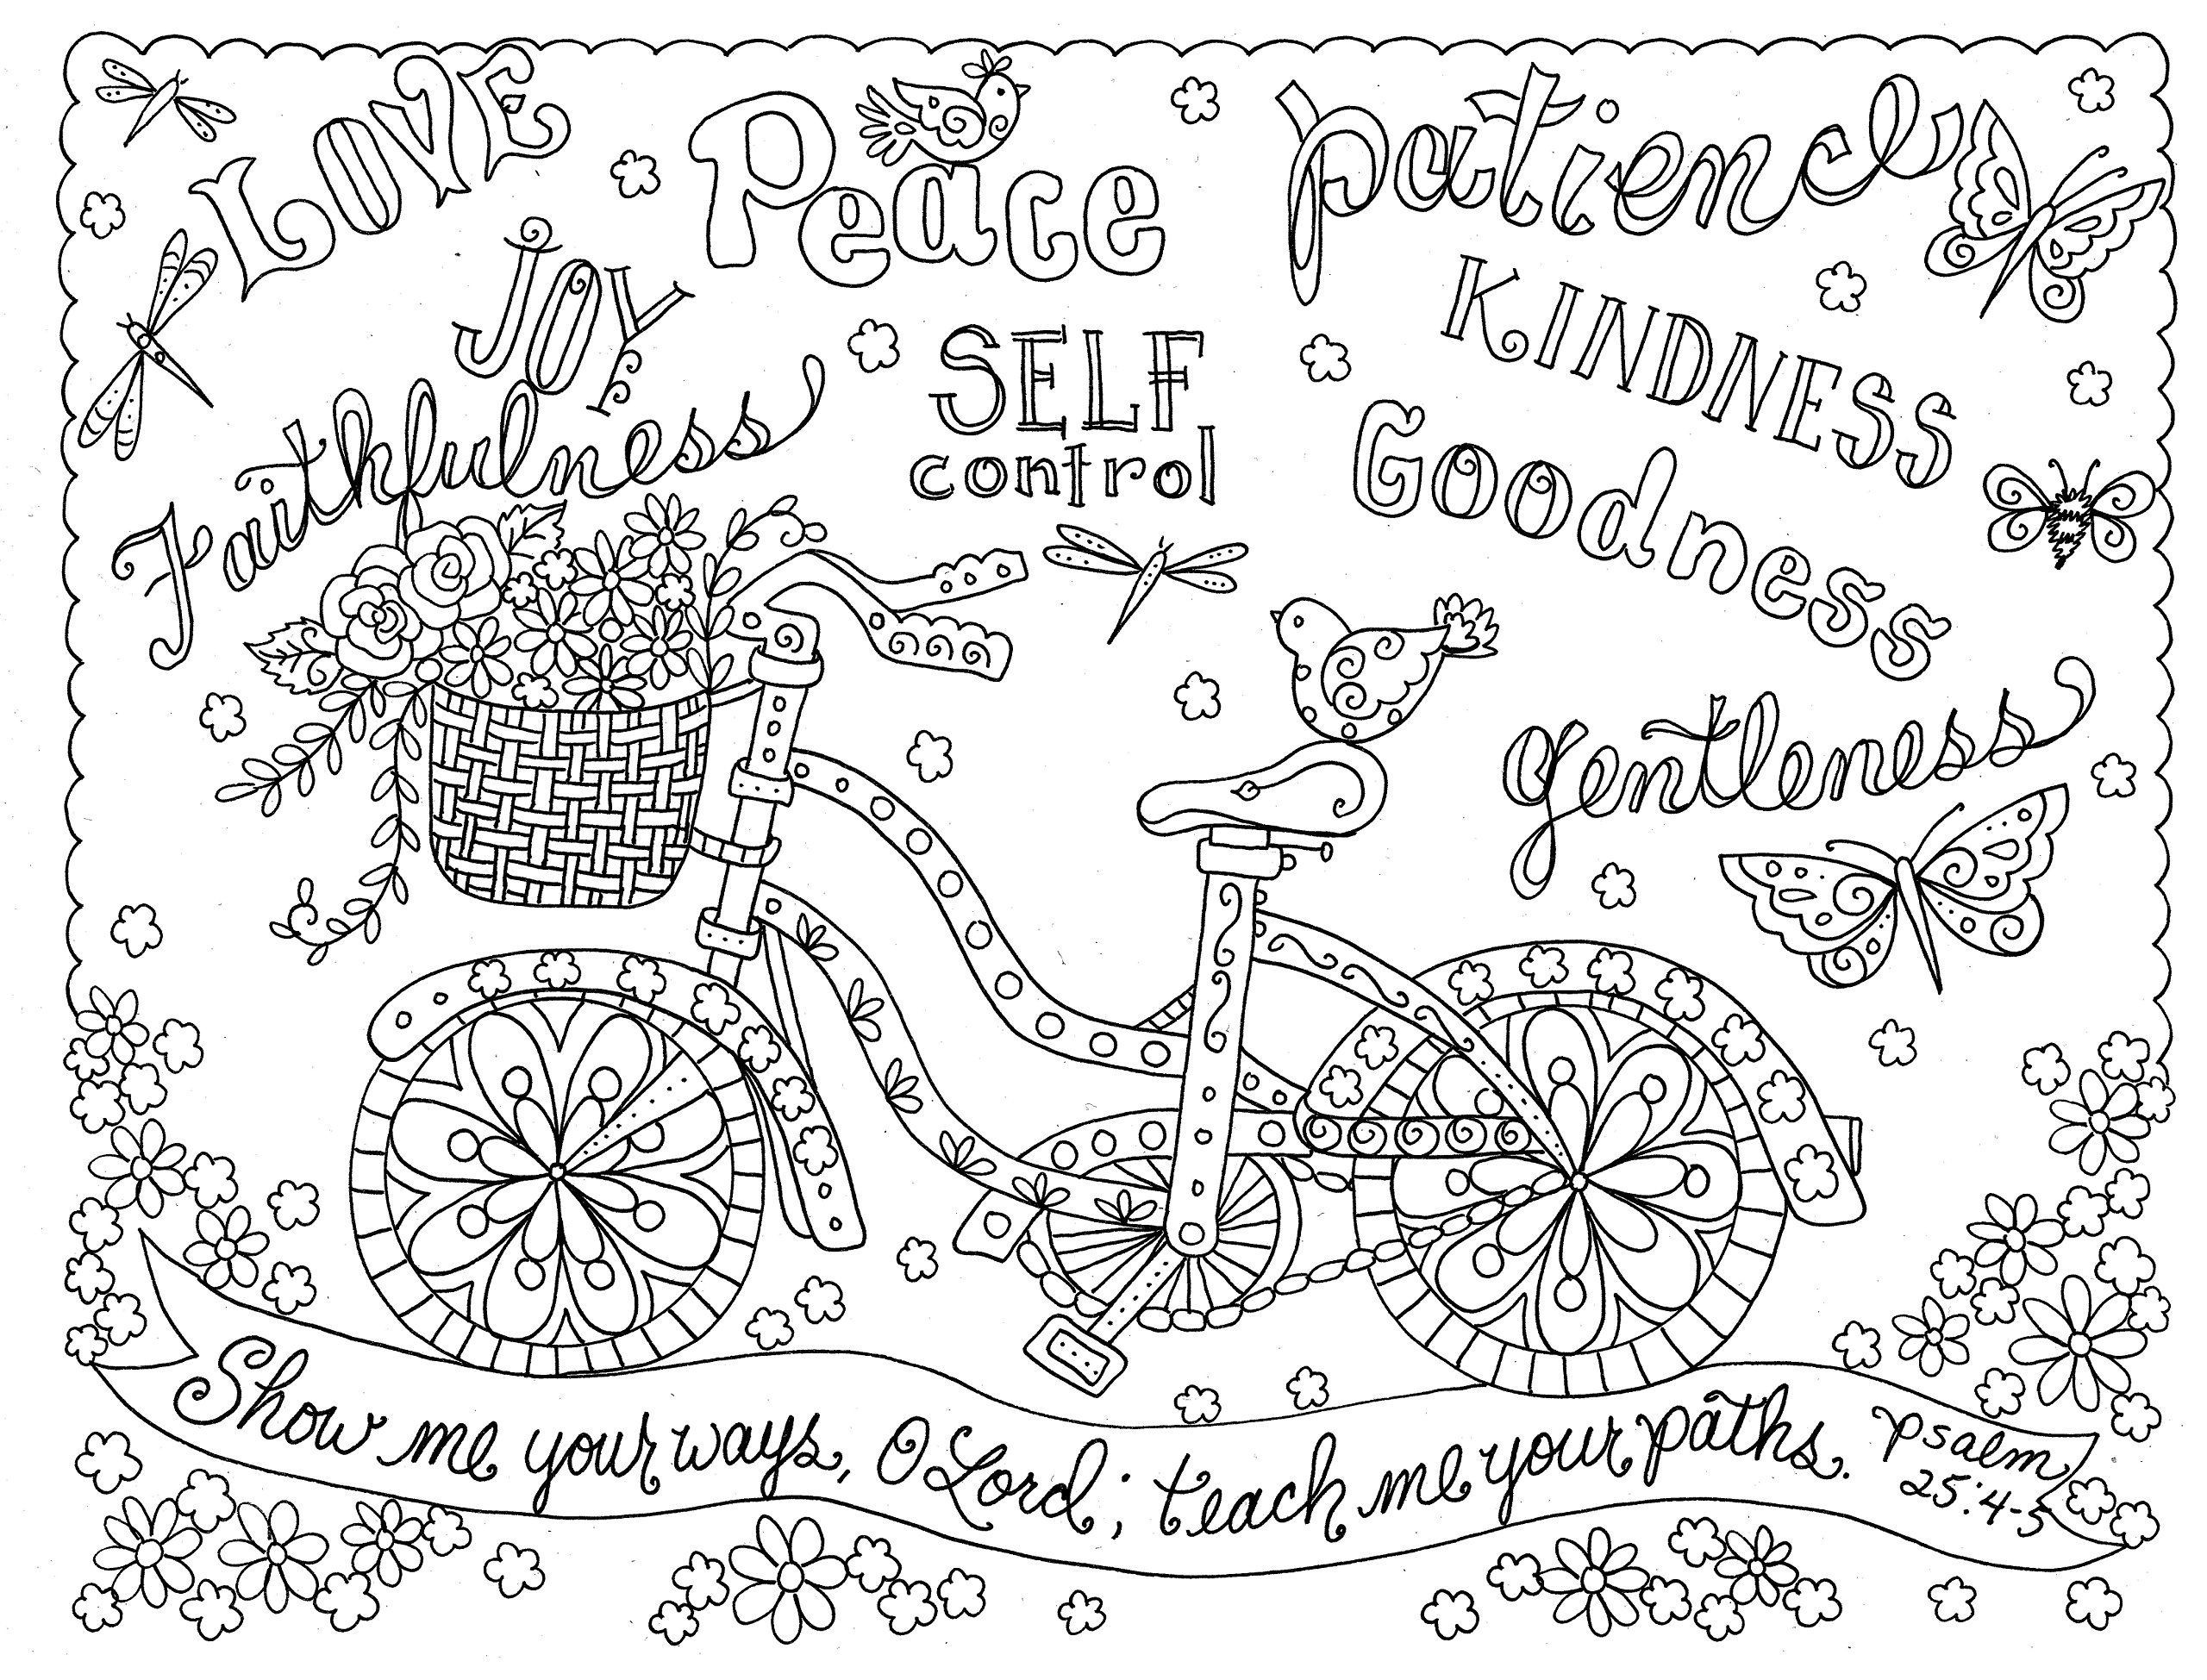 March Calendar Coloring Page Más Populares 2016 Coloring Calendar Inspirational Praise and Worship Coloring Of March Calendar Coloring Page Más Reciente Free Printable Minion Invitations Free Minion Coloring Pages Awesome